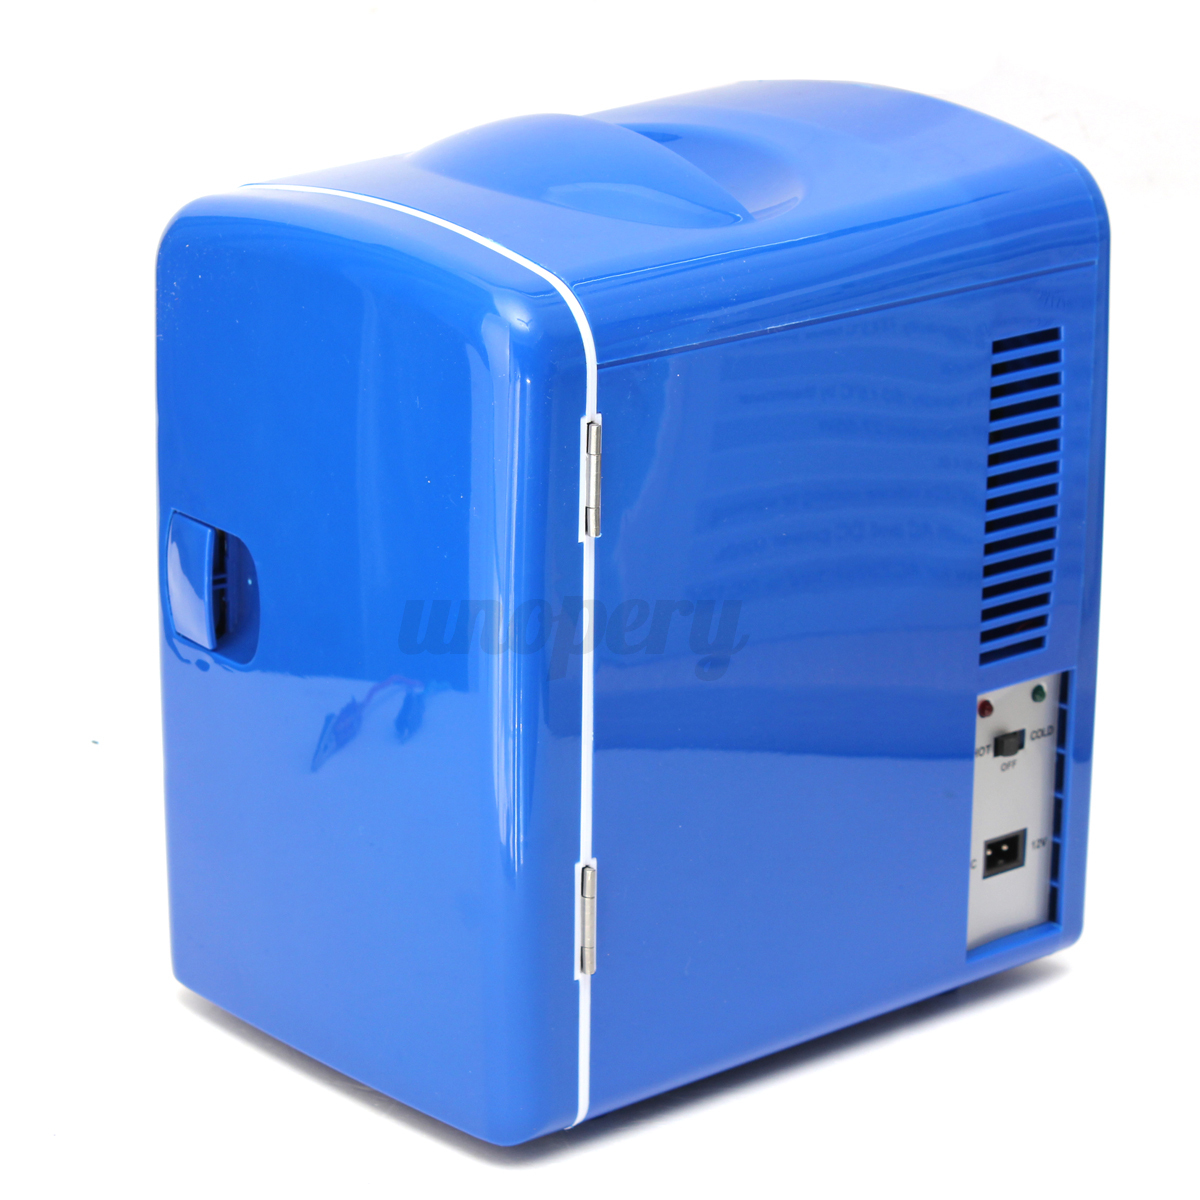 Small Portable Coolers : V l car mini fridge portable thermoelectric cooler